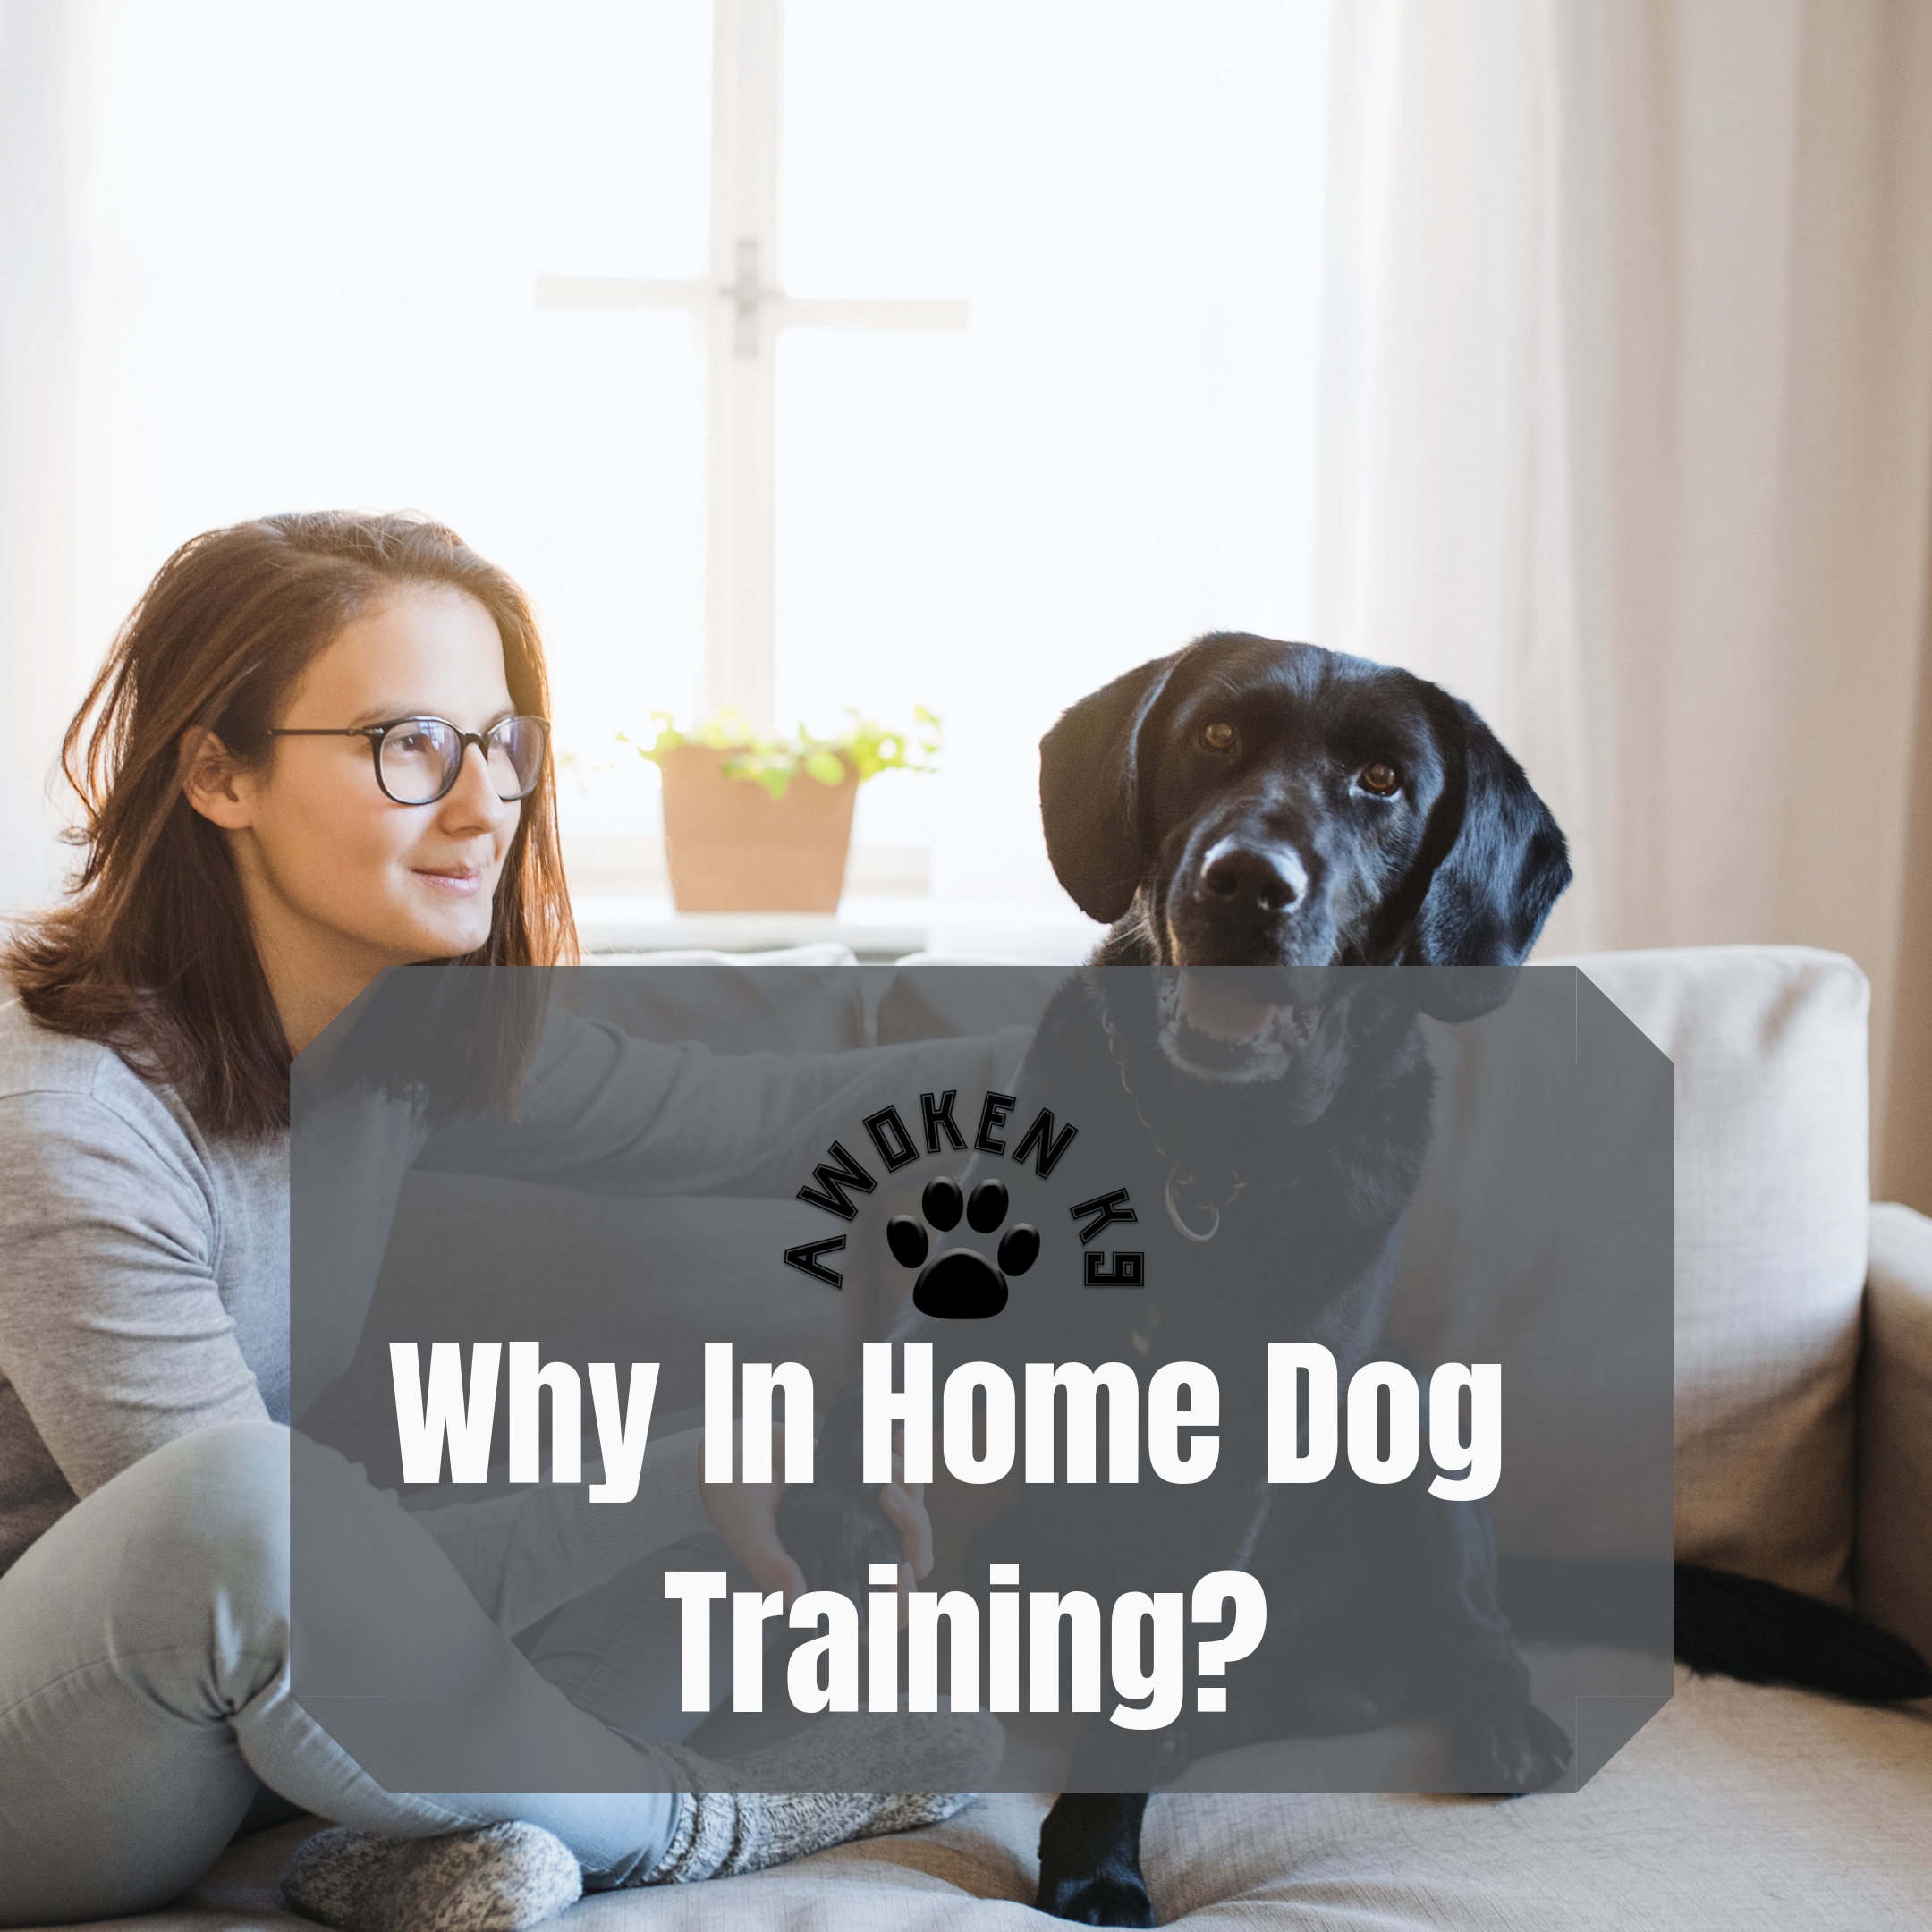 Why In Home Dog Training?